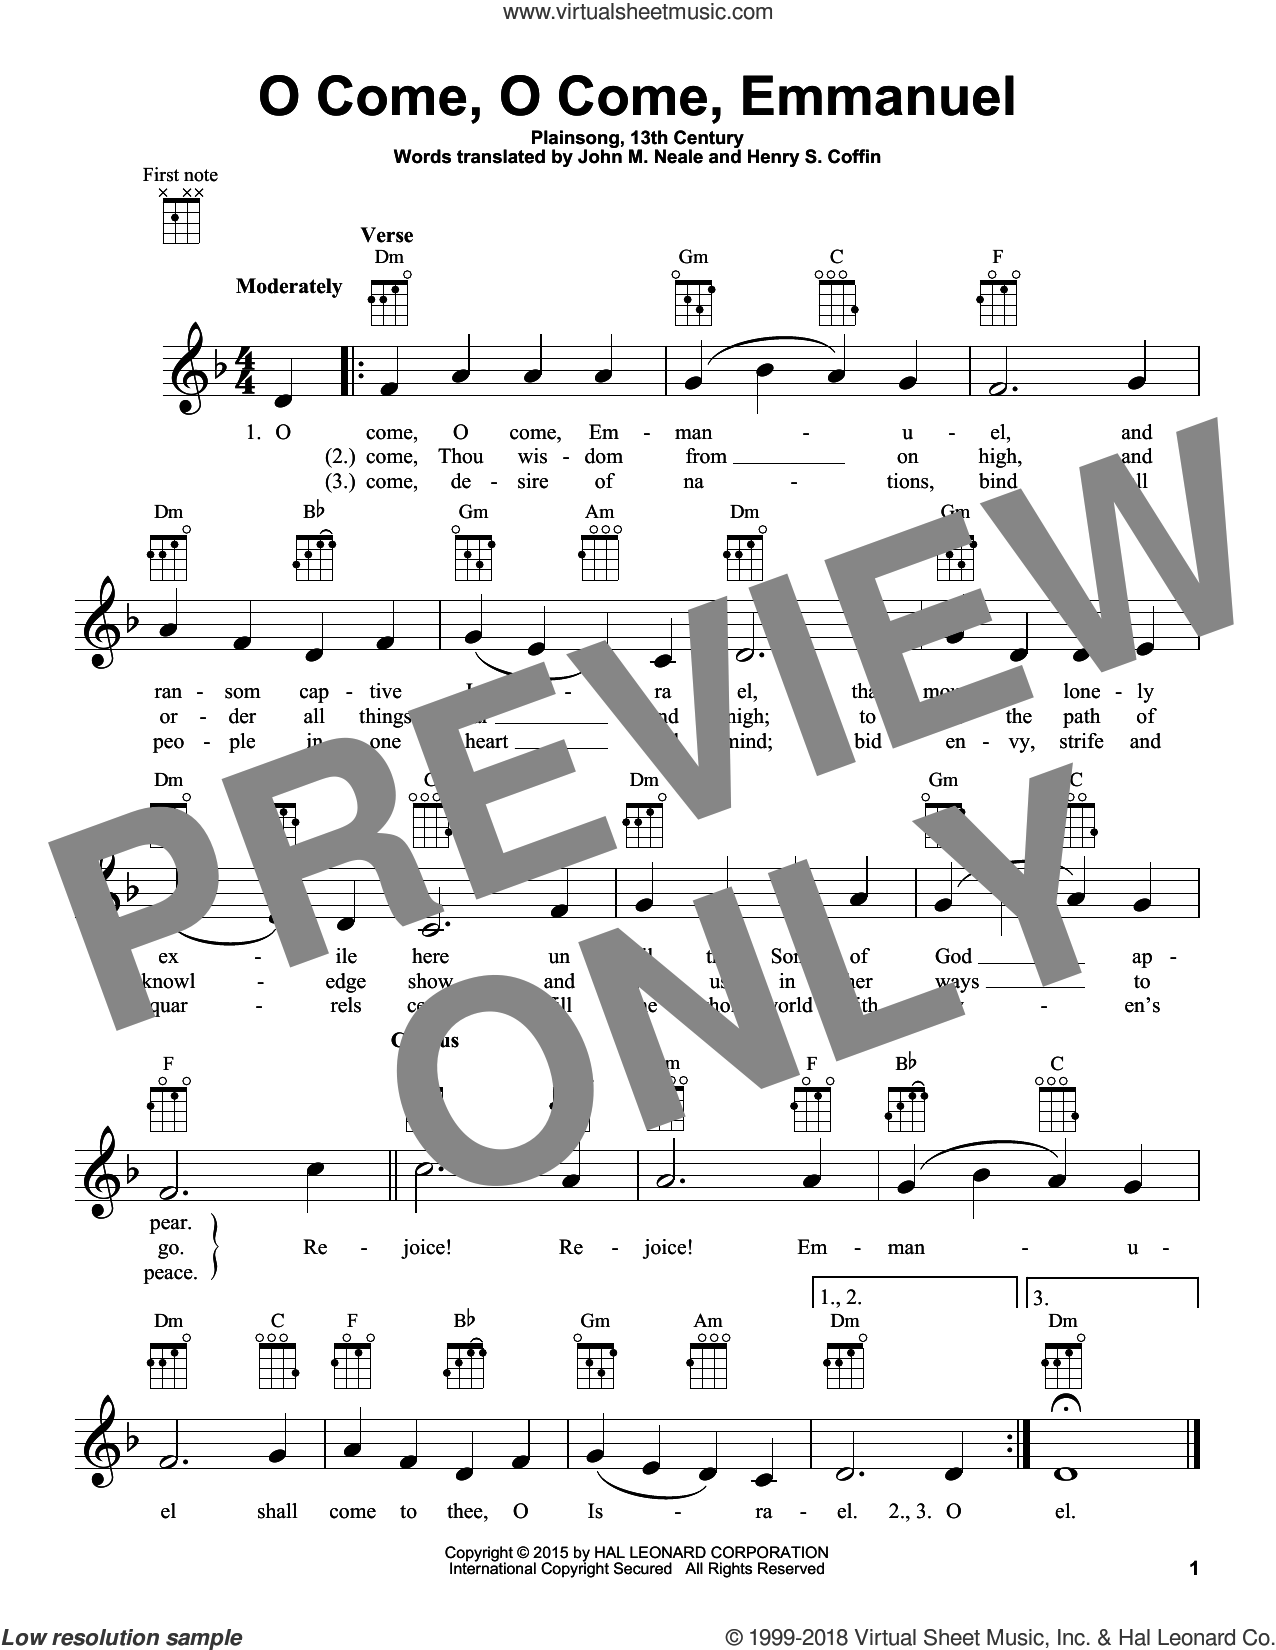 O Come, O Come Immanuel sheet music for ukulele by Plainsong, 13th Century, Henry S. Coffin (trans.) and John M. Neale (trans), intermediate skill level